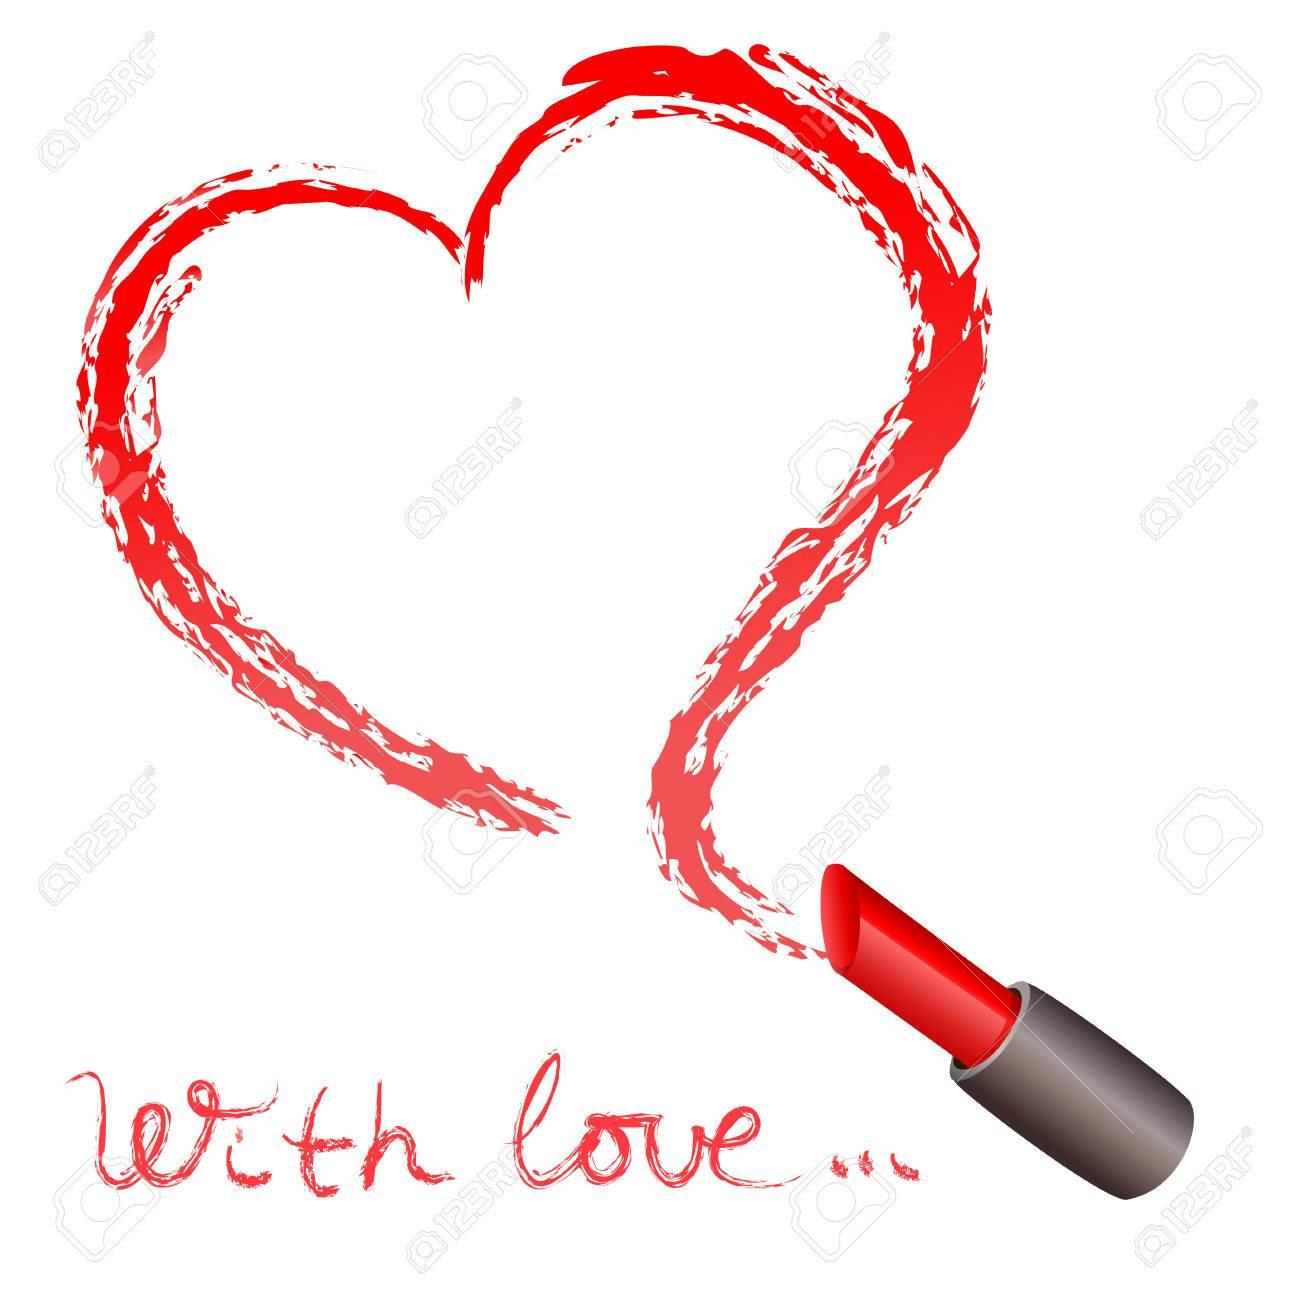 Lipstick and a trace in the form of heart. vector illustration Standard-Bild - 26162328